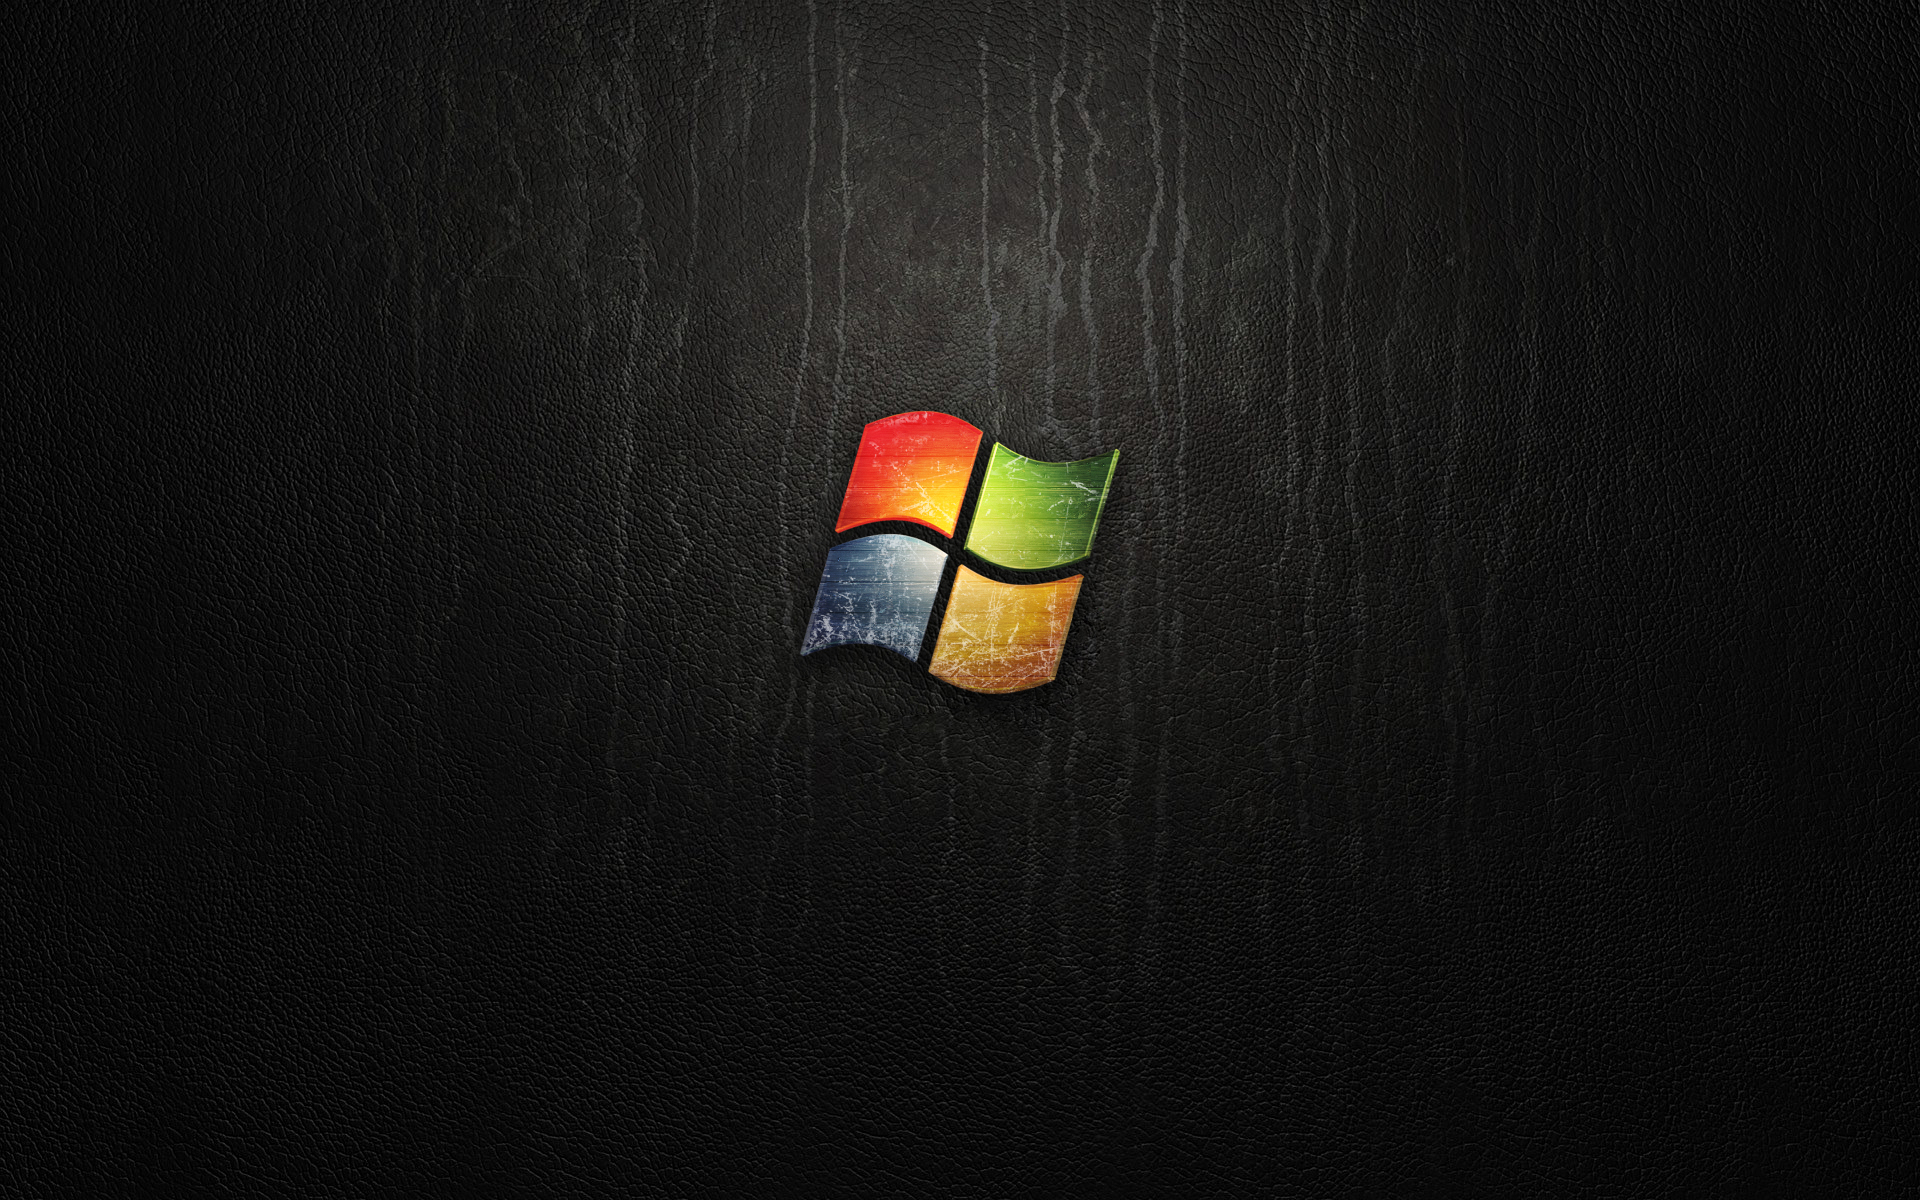 1920x1200 Weathered Windows Wallpaper Desktop Pc And Mac